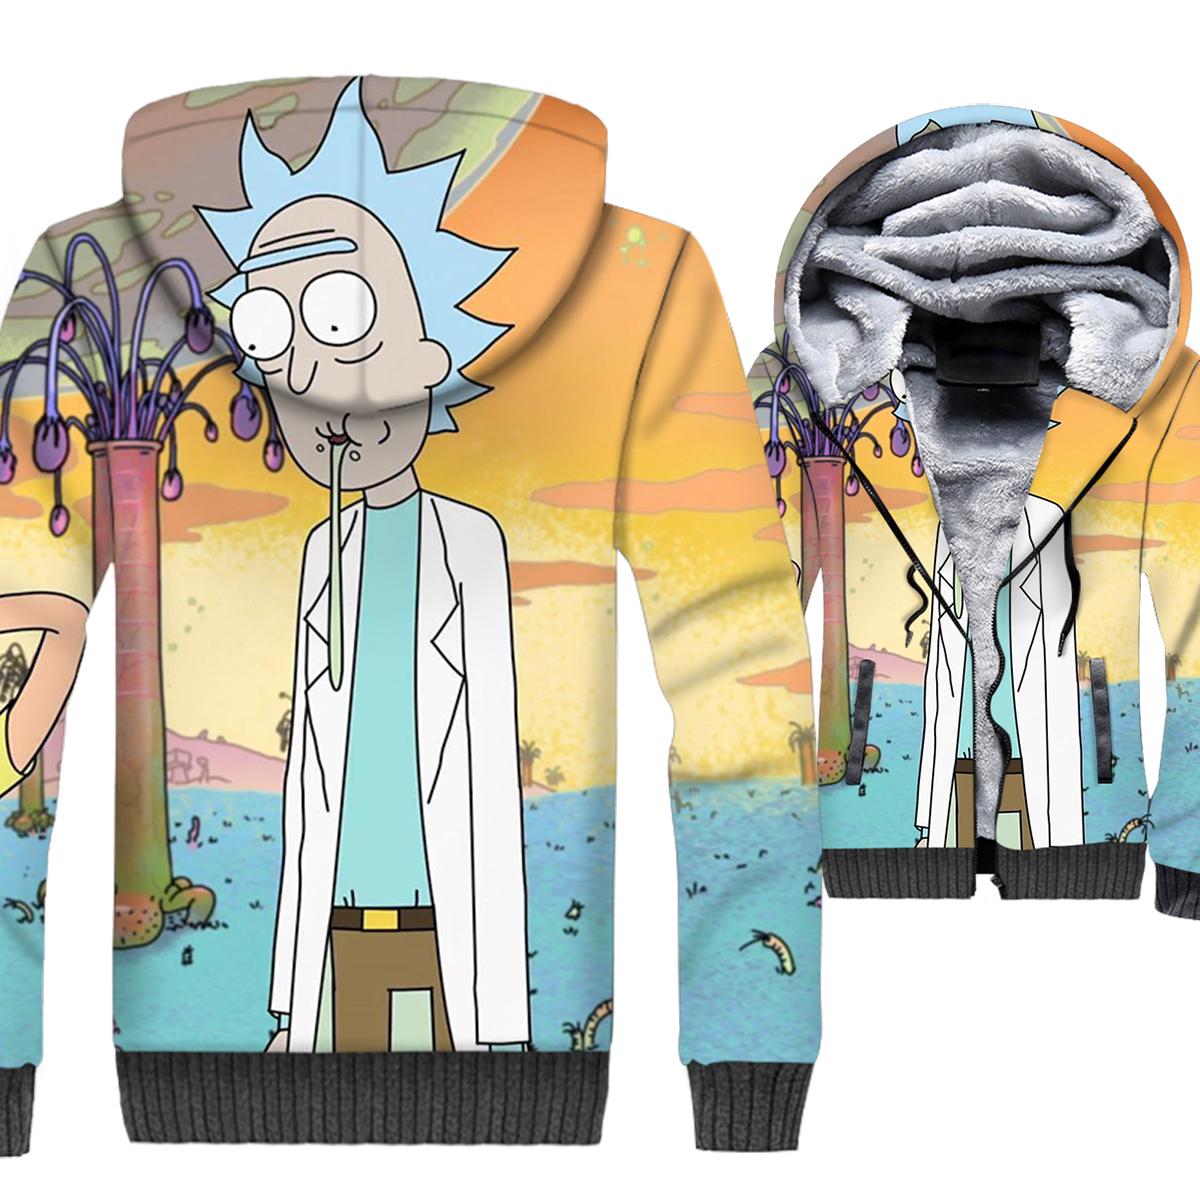 3D Pattern Jacket Male RICK AND MORTY Fashion Men 39 s Hoodies 2018 Autumn Fleece Coat Winter Sweatshirts For Men Harajuku Hoddies in Hoodies amp Sweatshirts from Men 39 s Clothing